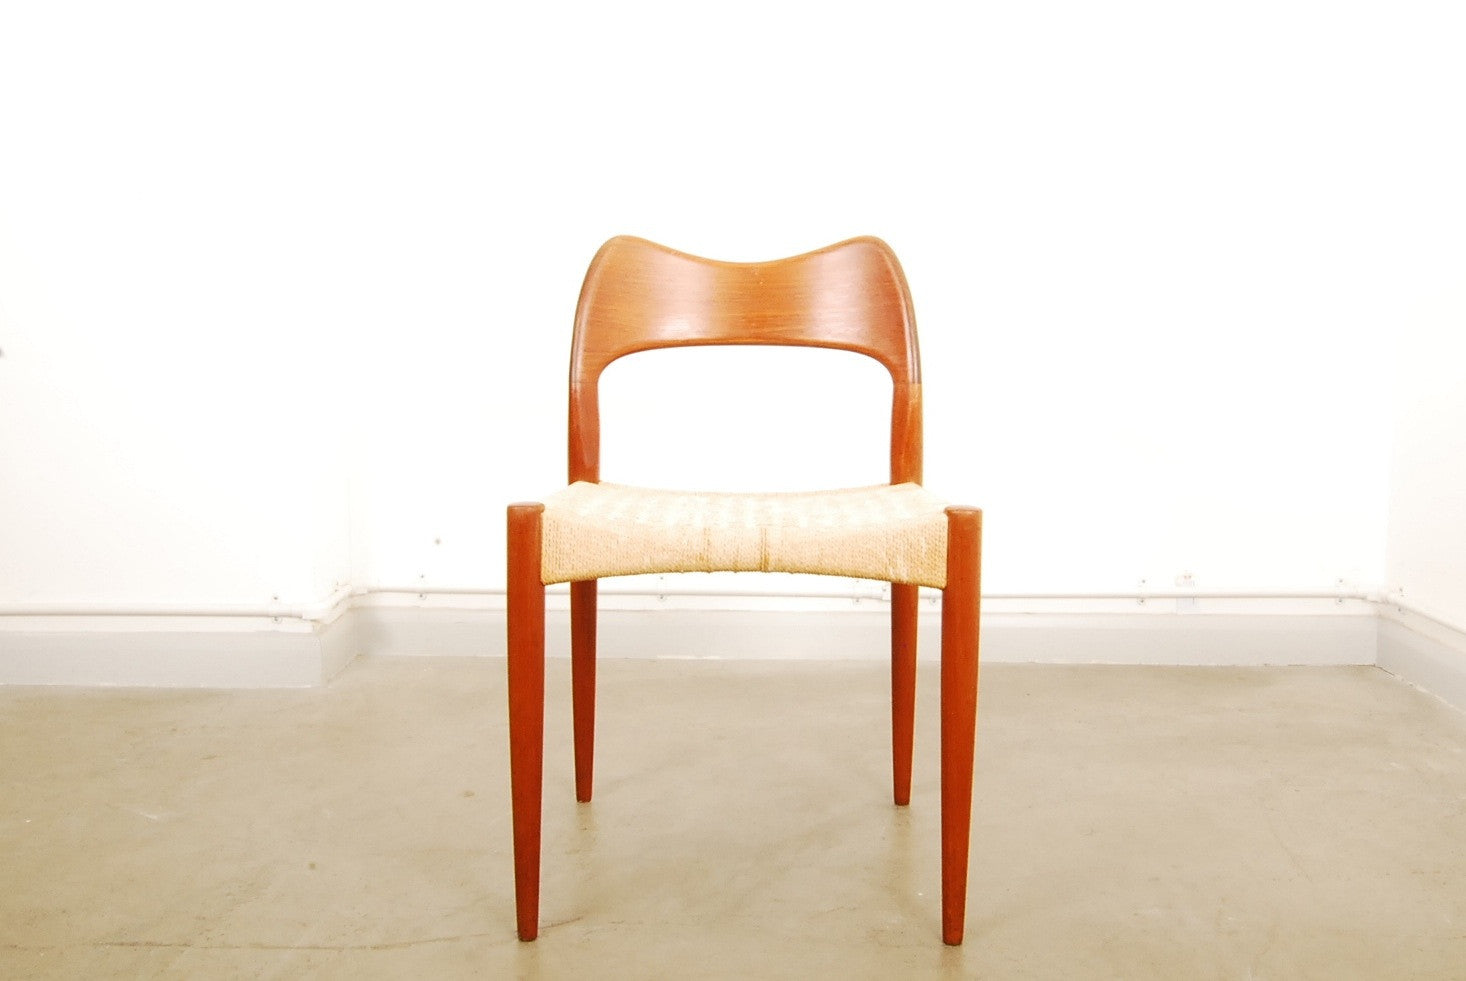 Desk / dining chair by Arne Hovmand Olsen